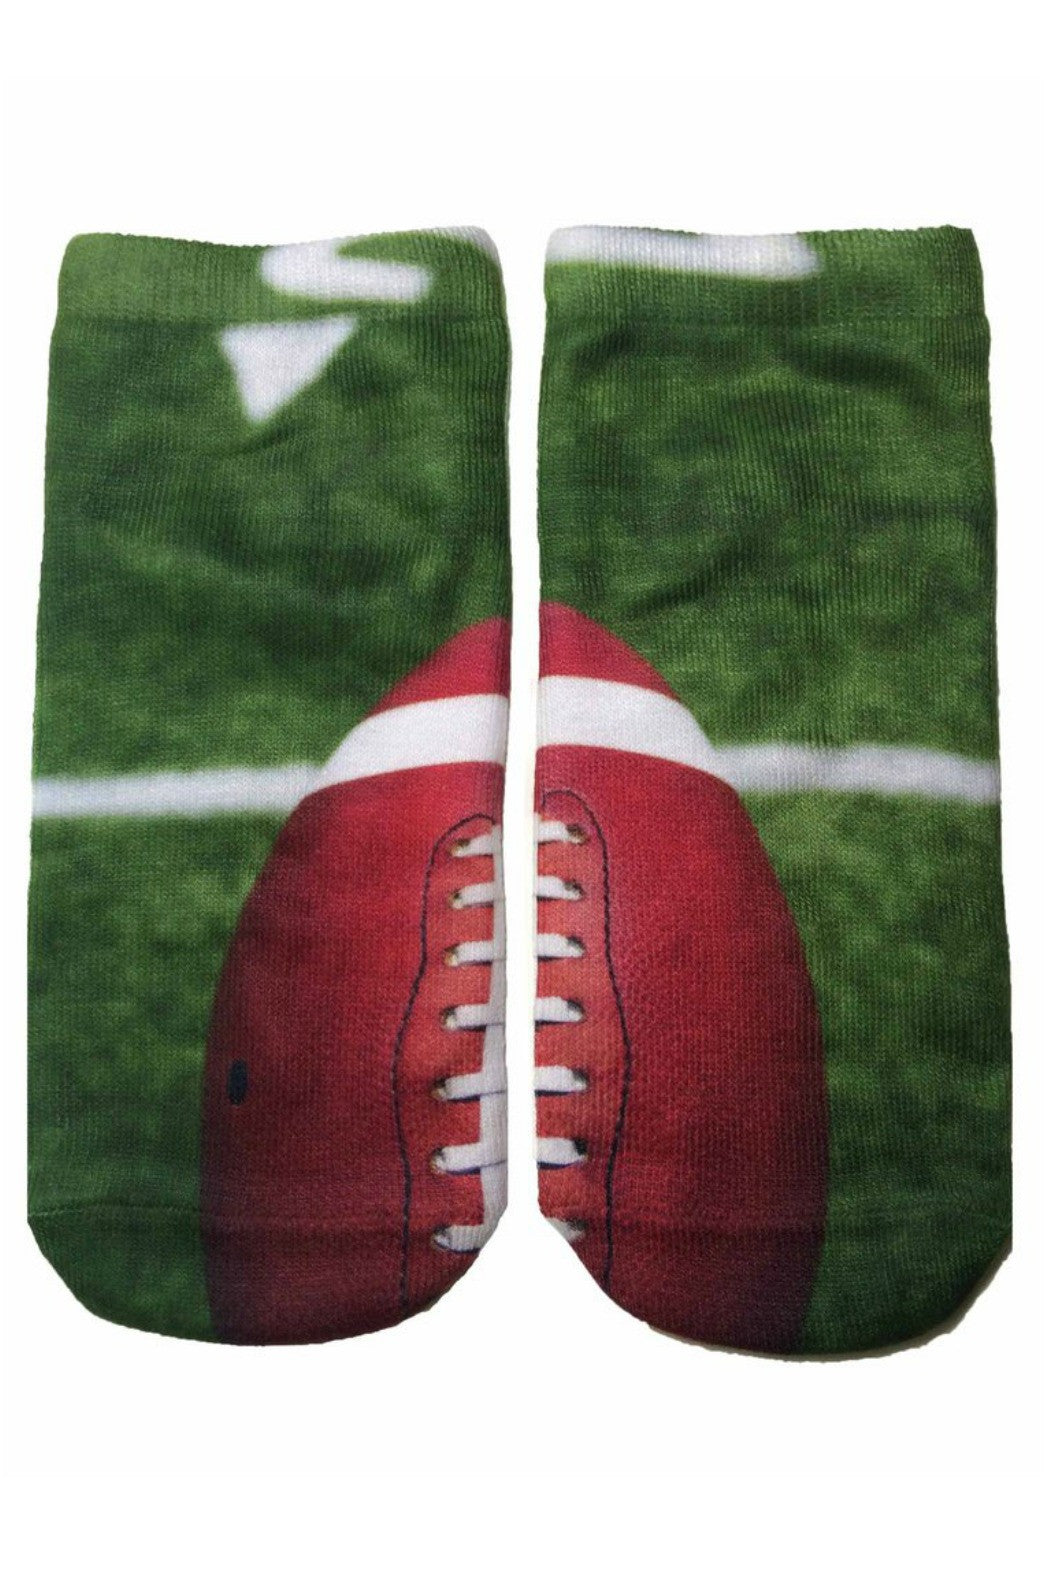 Football Ankle Socks - R+D Hipster Emporium | Womens & Mens Clothing